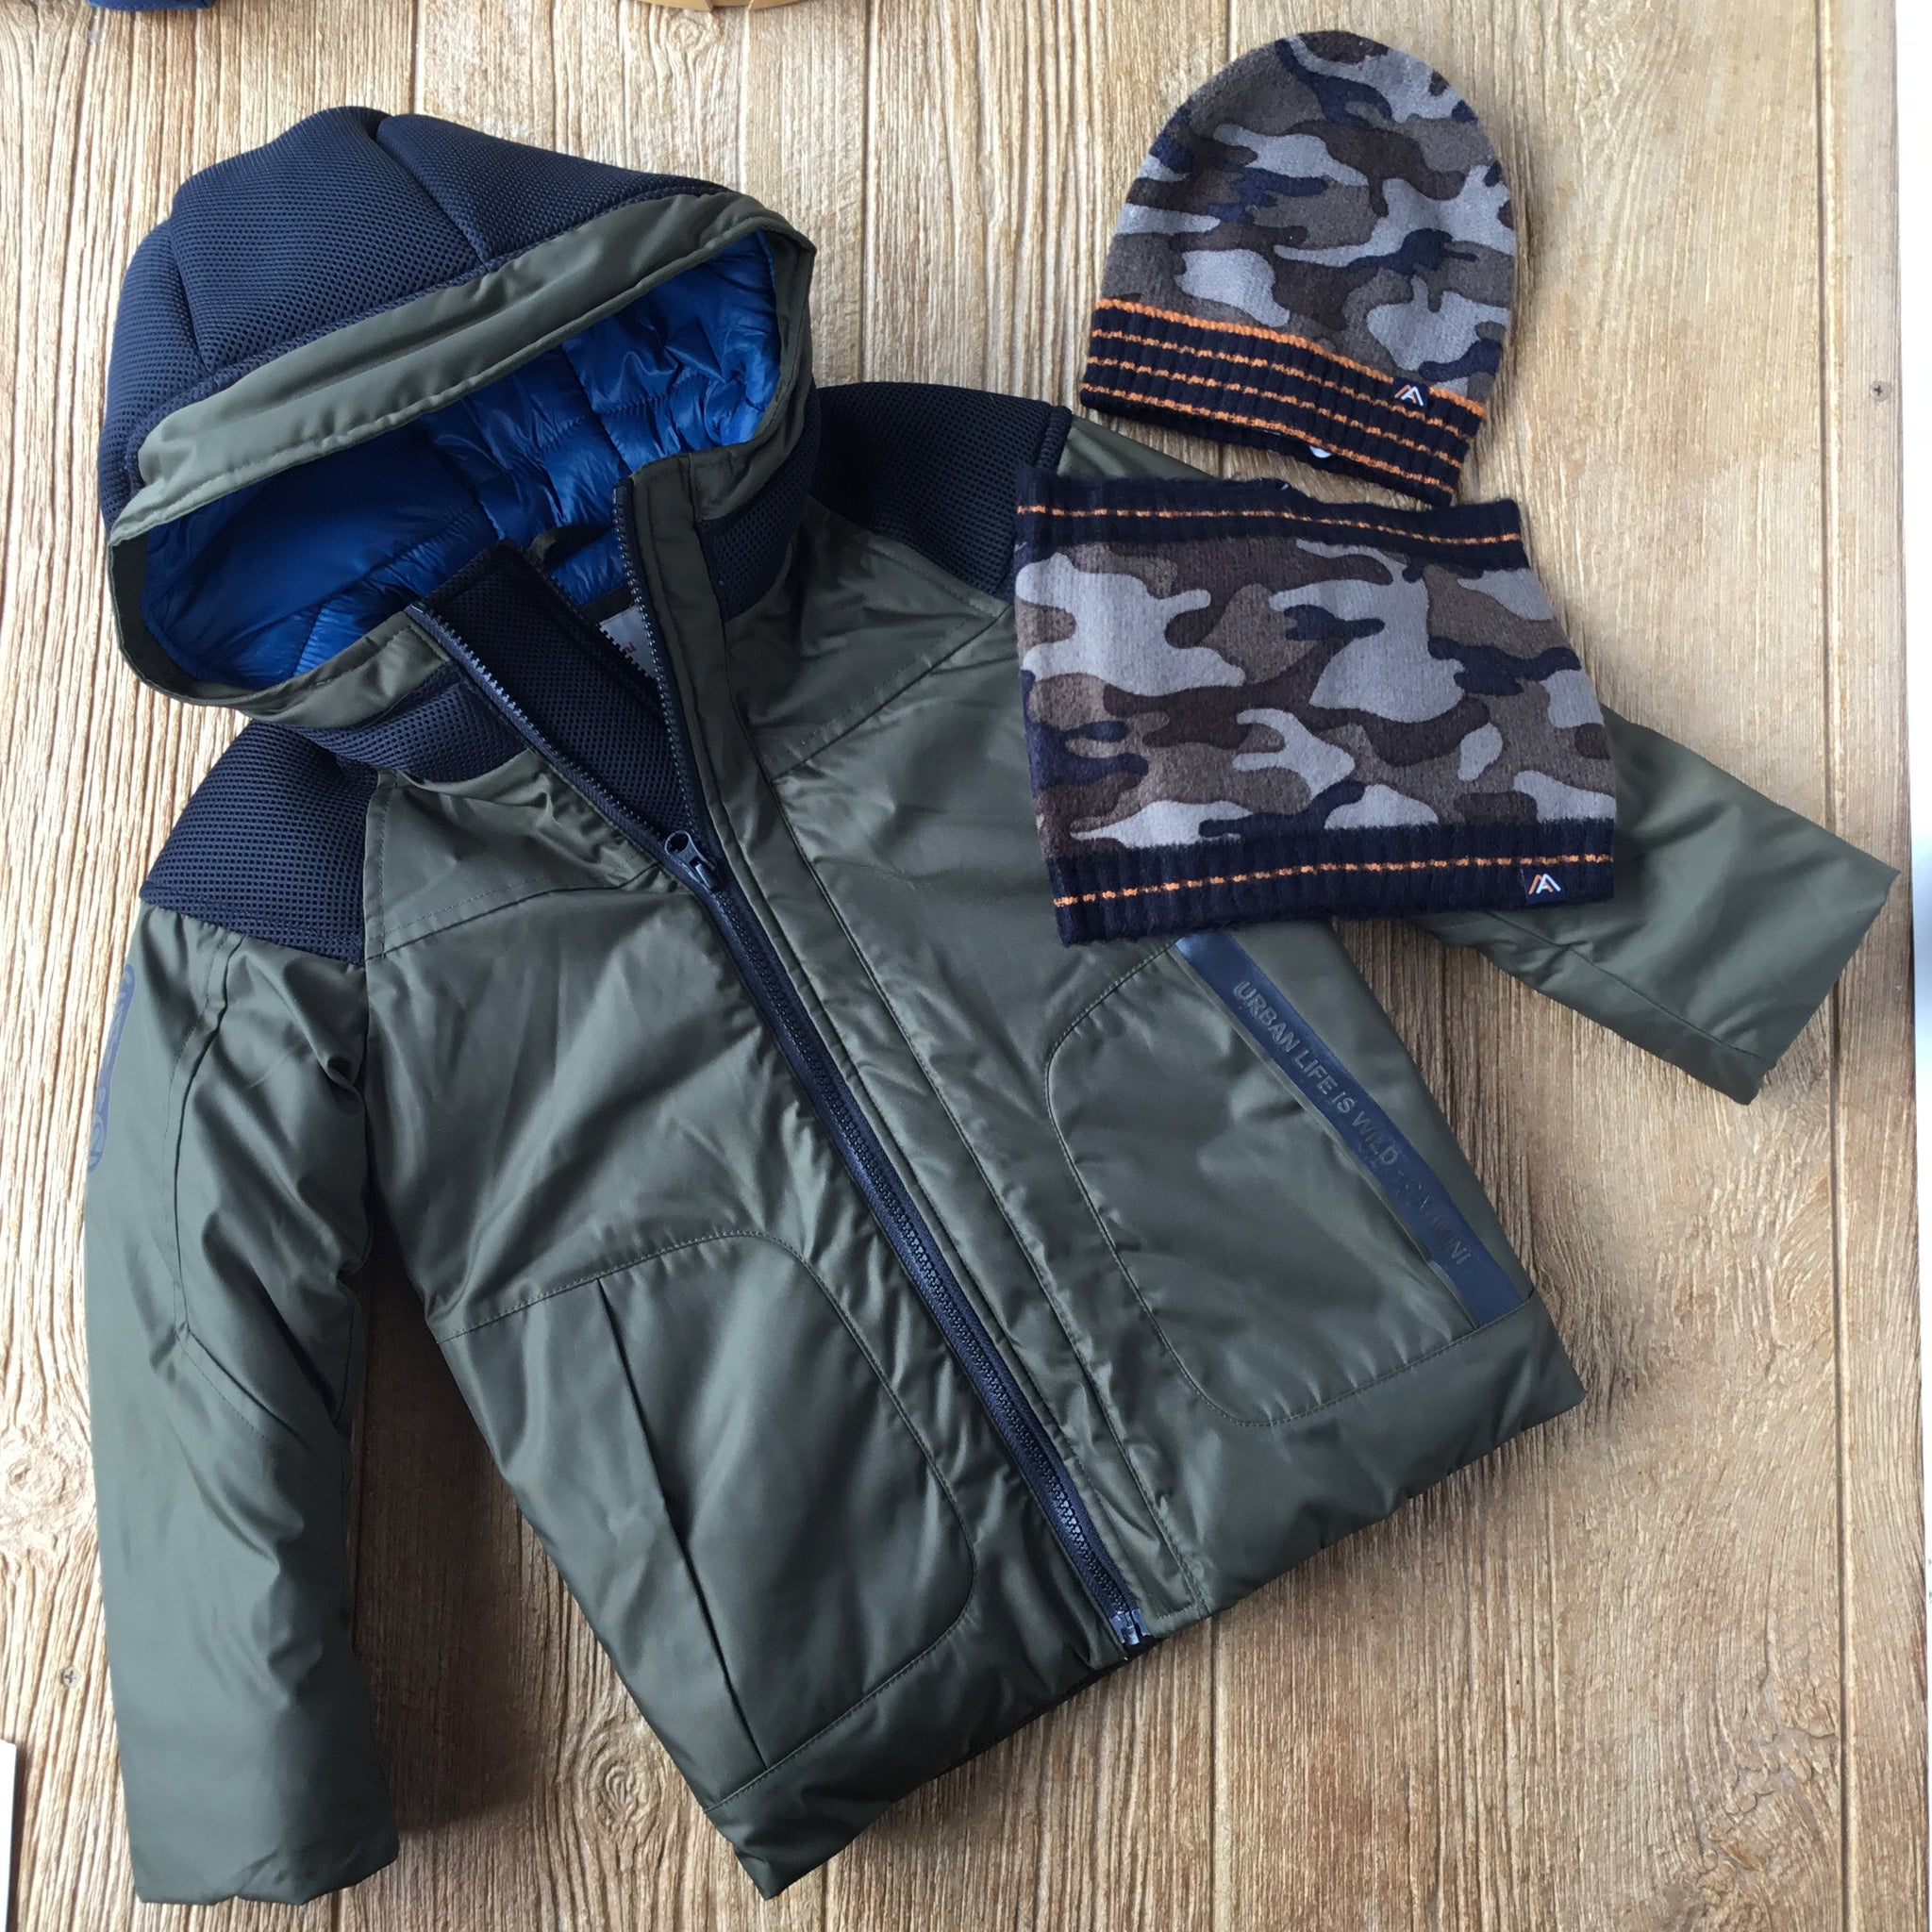 CAT 41054 Army Green Coat with Black